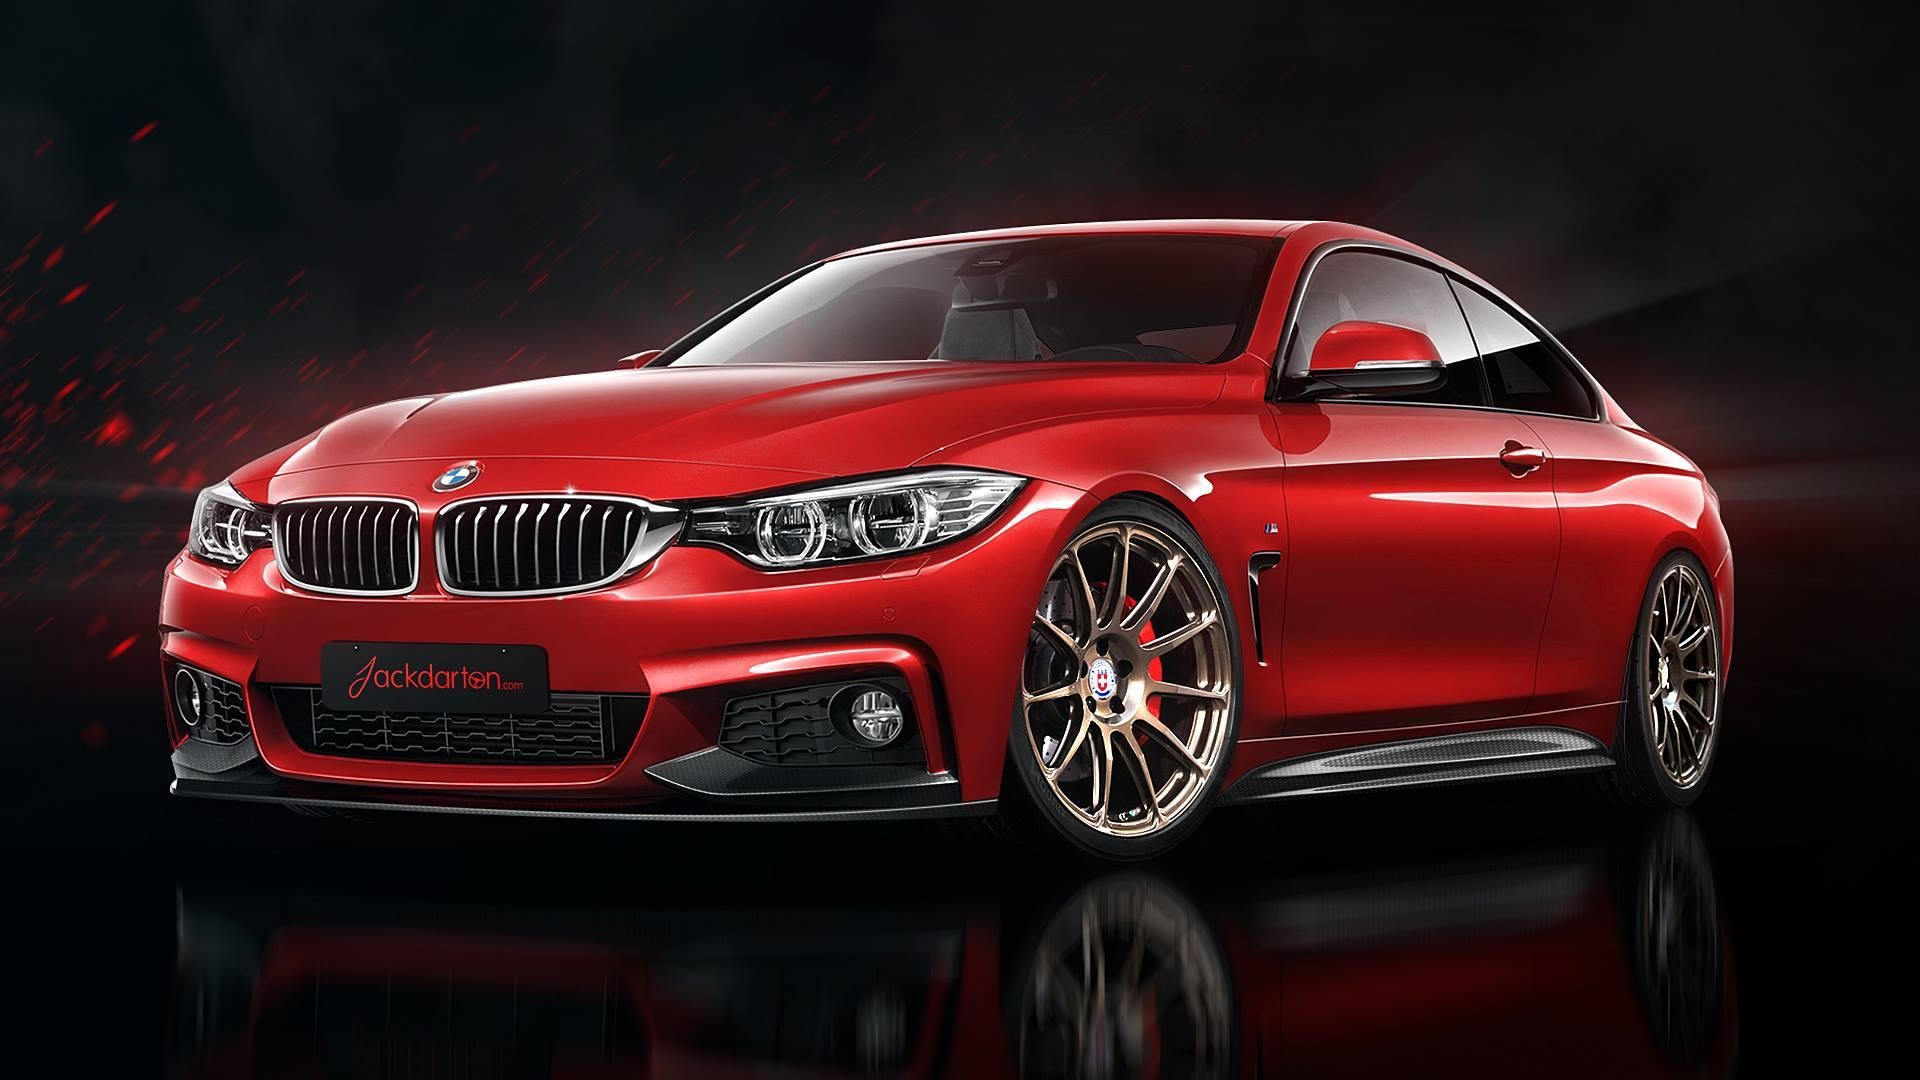 1920x1080 #BMW #F32 #435i #Coupe #MPackage #xDrive #Red #Devil